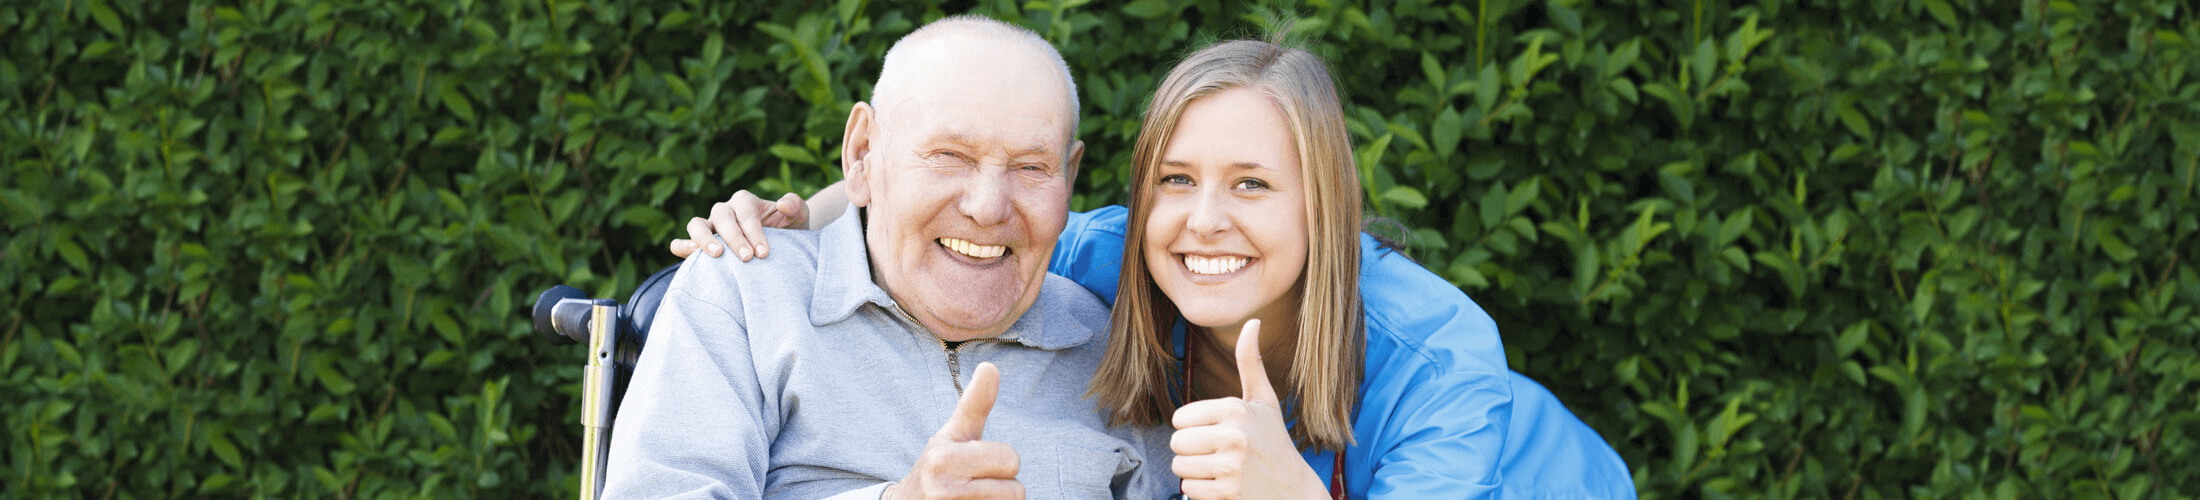 An elderly man and a young lady giving a thumbs up to the camera